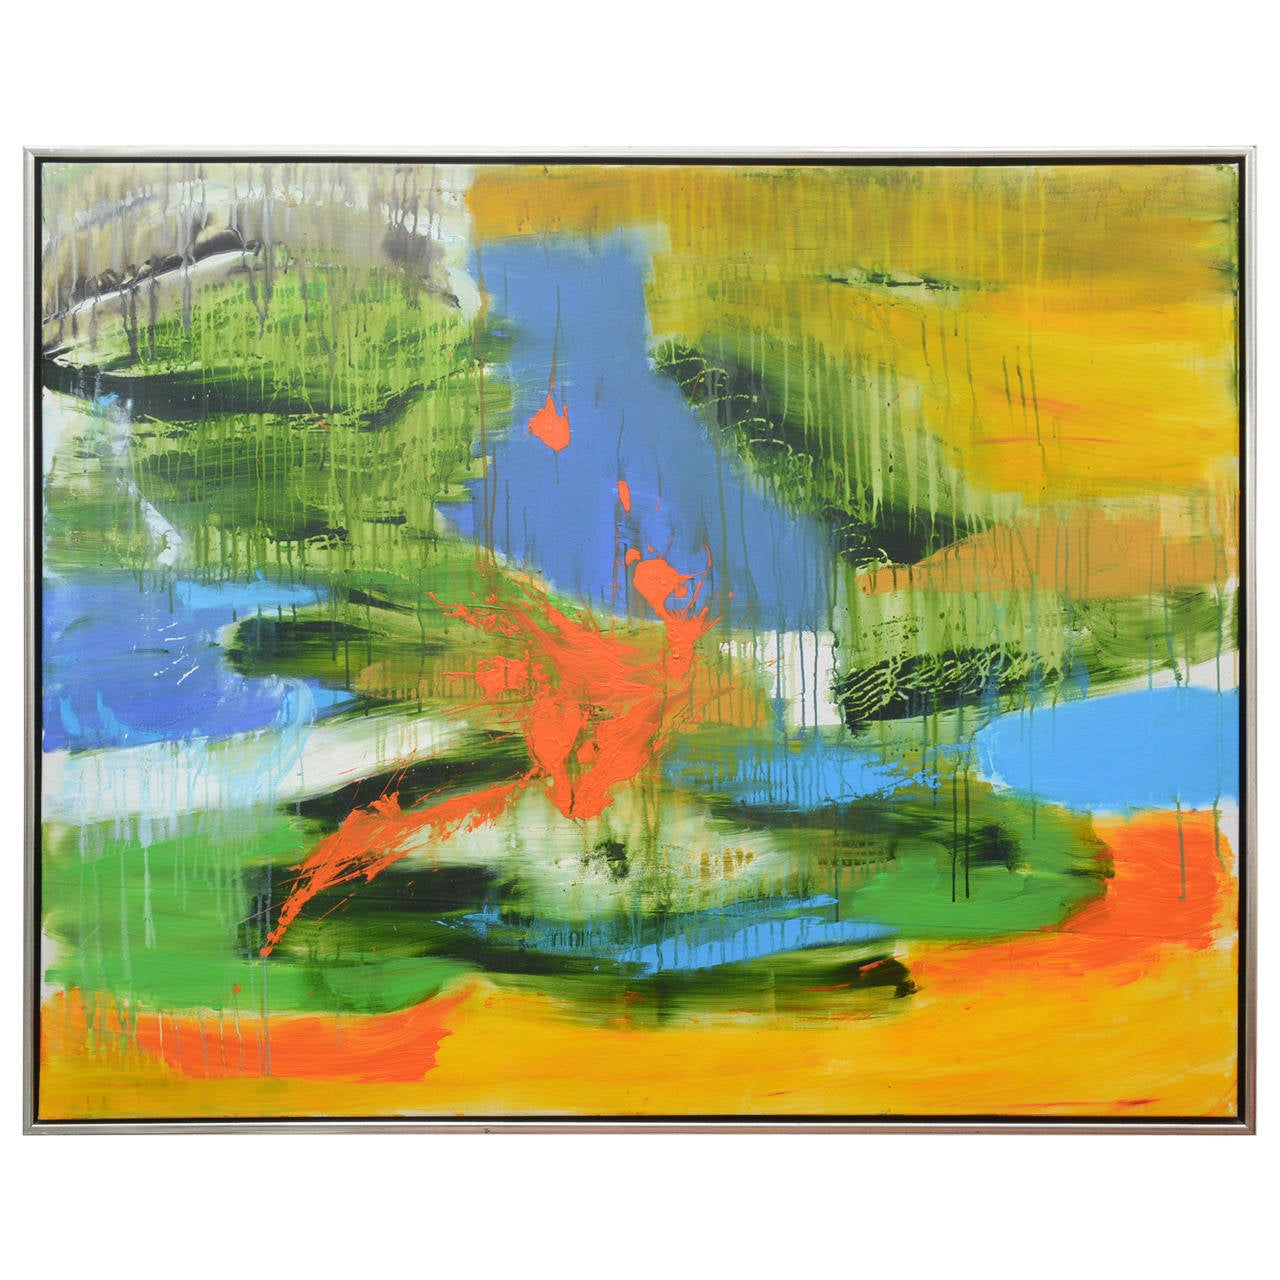 Danish Abstract Composition by Erling Leick For Sale at 1stdibs